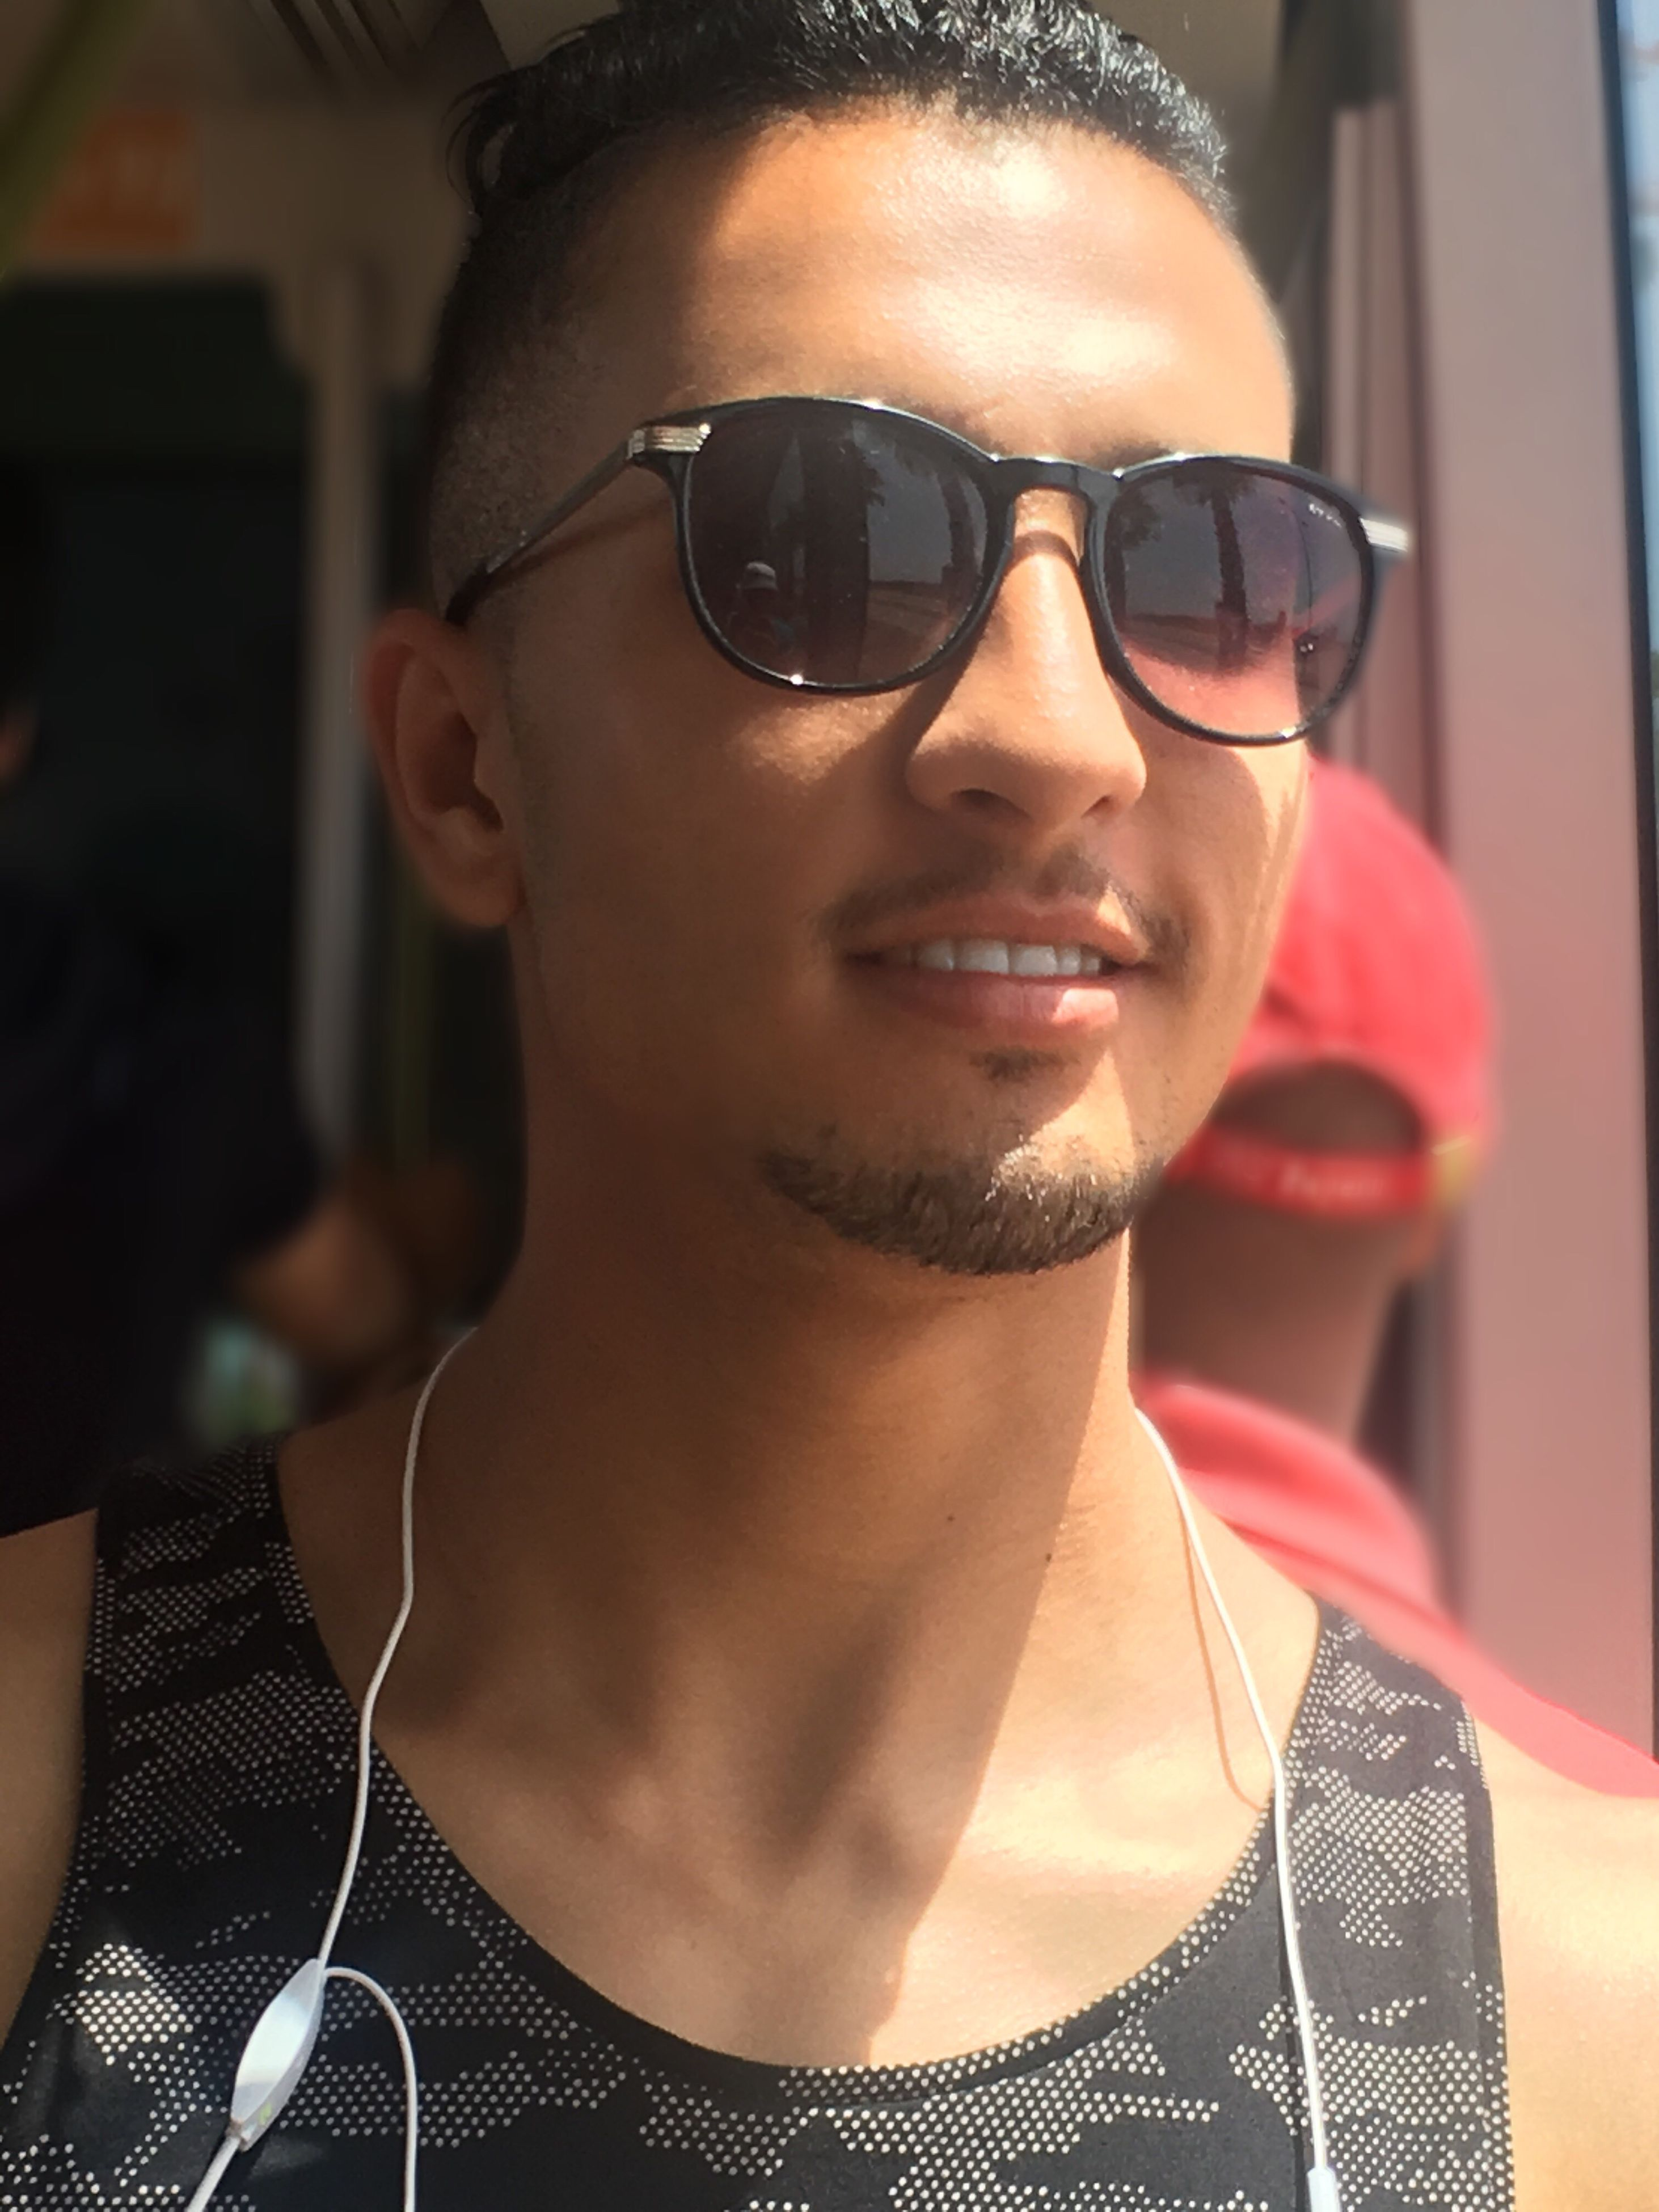 portrait, person, lifestyles, front view, sunglasses, headshot, leisure activity, casual clothing, eyeglasses, close-up, mid adult men, focus on foreground, confidence, toothy smile, day